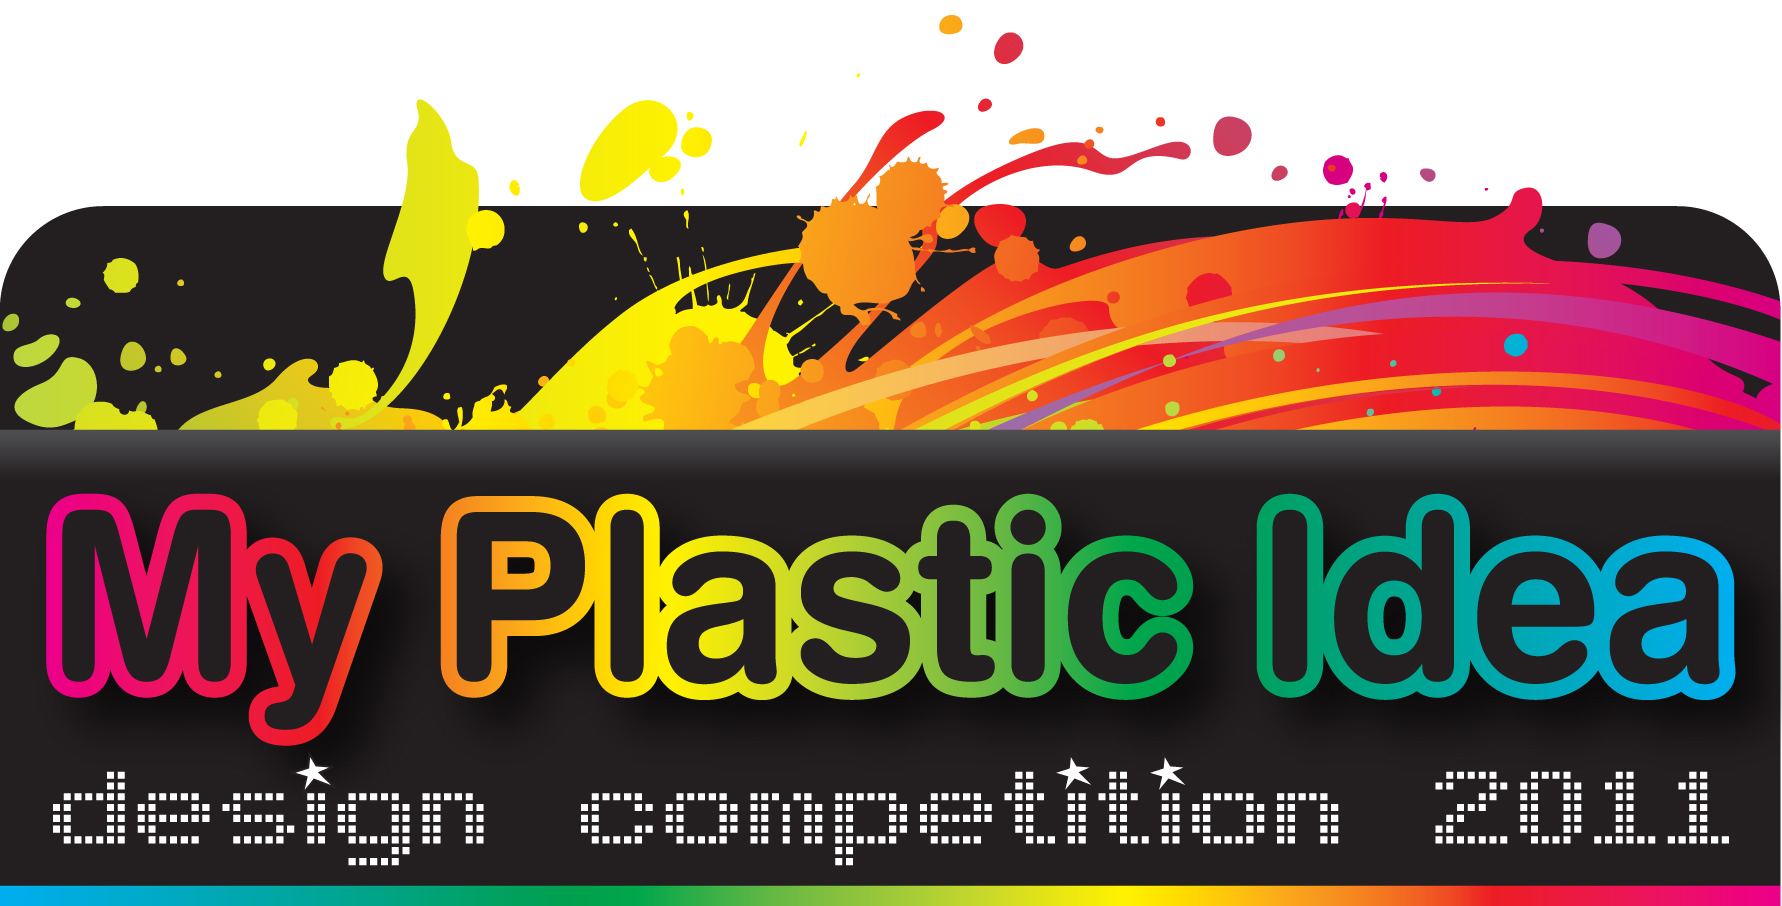 my plastic idea design competition logo idea design - Idea Design